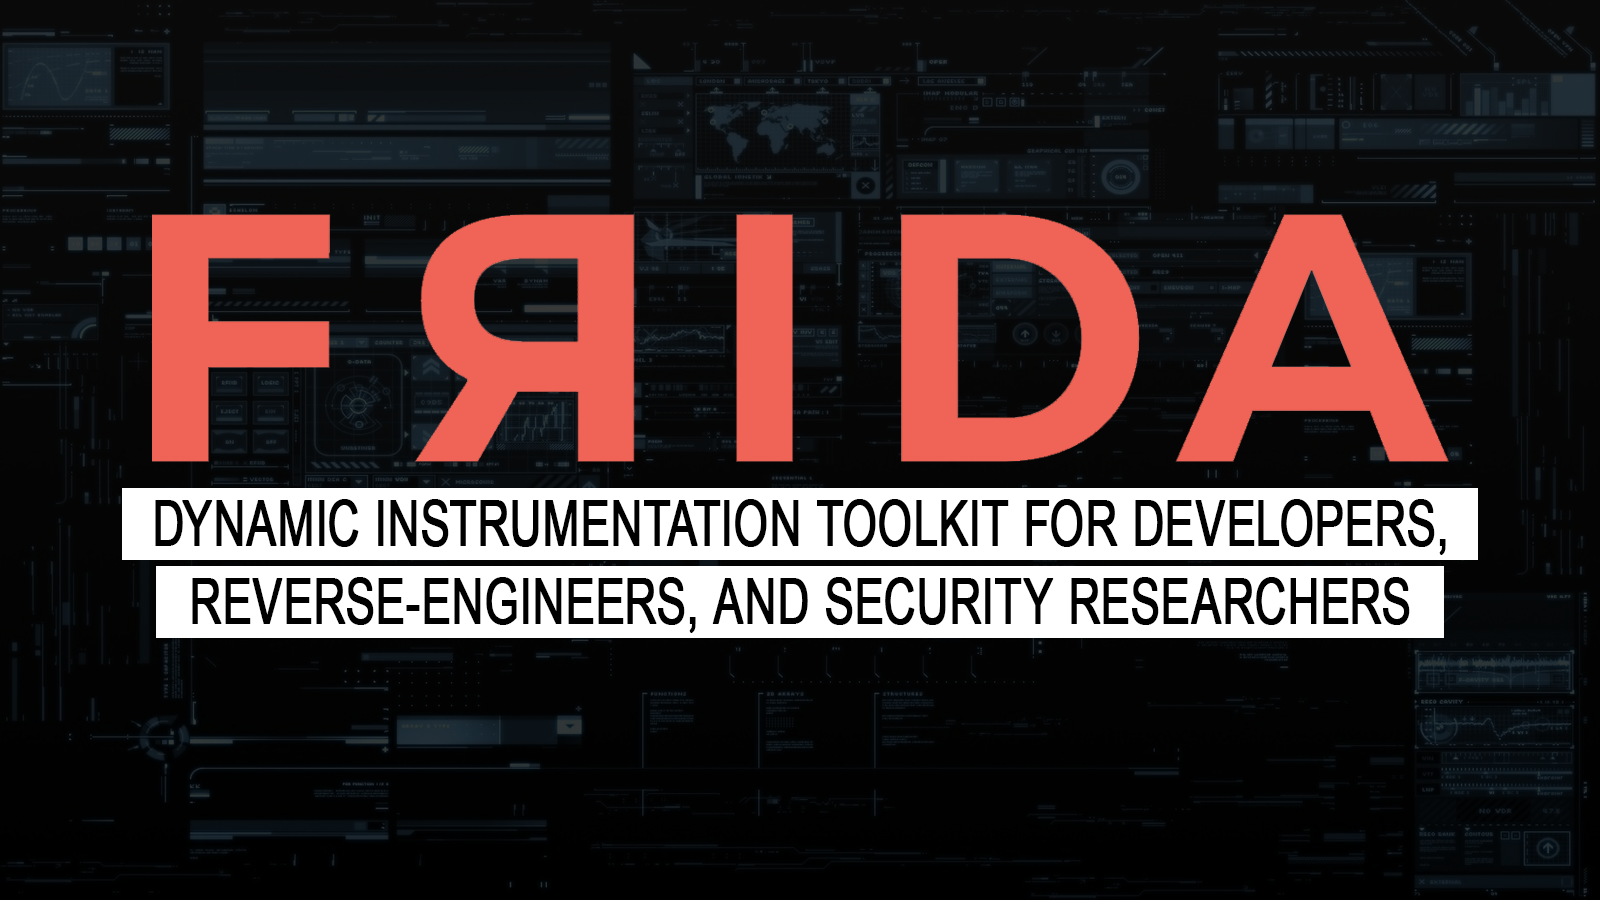 Frida - Dynamic Instrumentation Toolkit for Developers, Reverse-Engineers, and Security Researchers